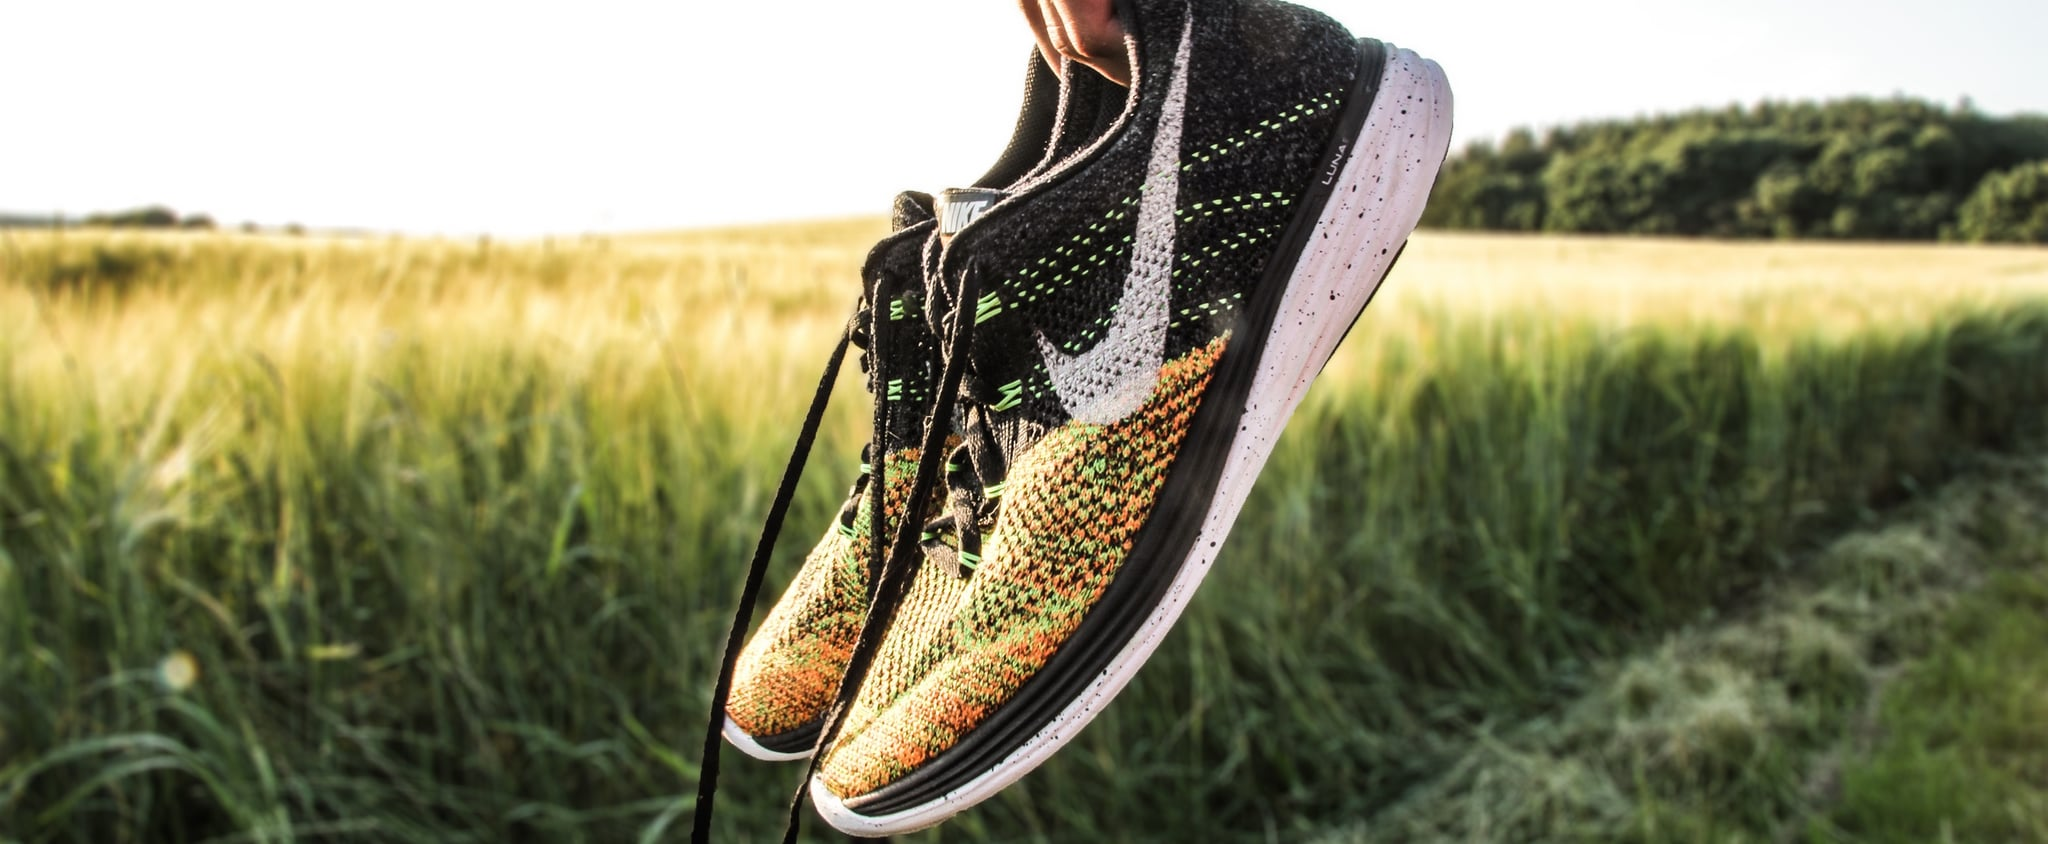 Best Shoes For Zumba   POPSUGAR Fitness